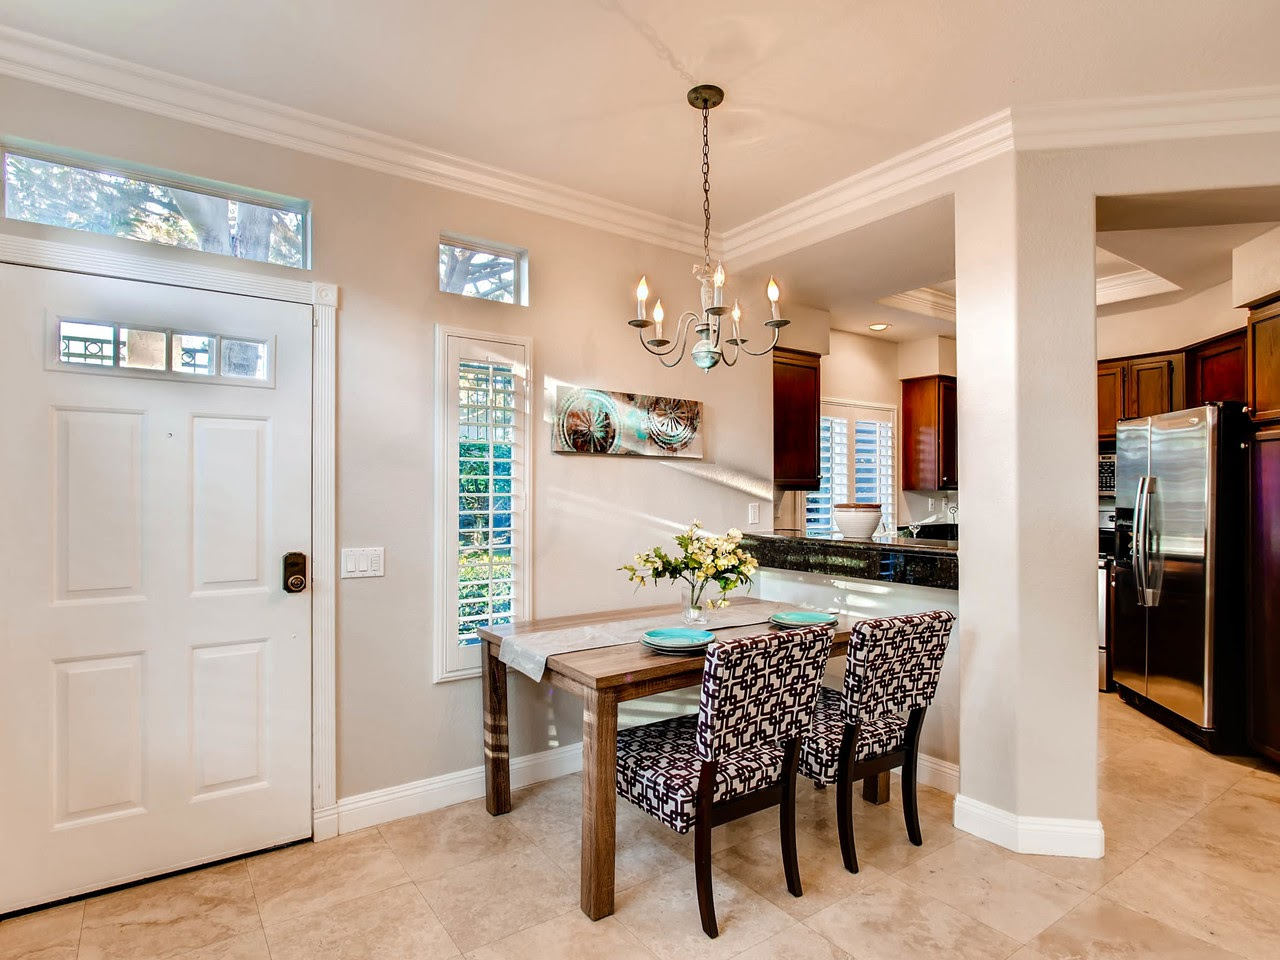 San Diego Remodeling  San Diego Remodeling And Home. Tiny Kitchen Table. Recommended Kitchen Colors. Small Kitchen Without Cabinets. Old Kitchen Stool. Easy Kitchen Organization Ideas. Kitchen Cabinets Veneer. Xpert Kitchen Appliances Prices. Kitchen Tools You Don't Need